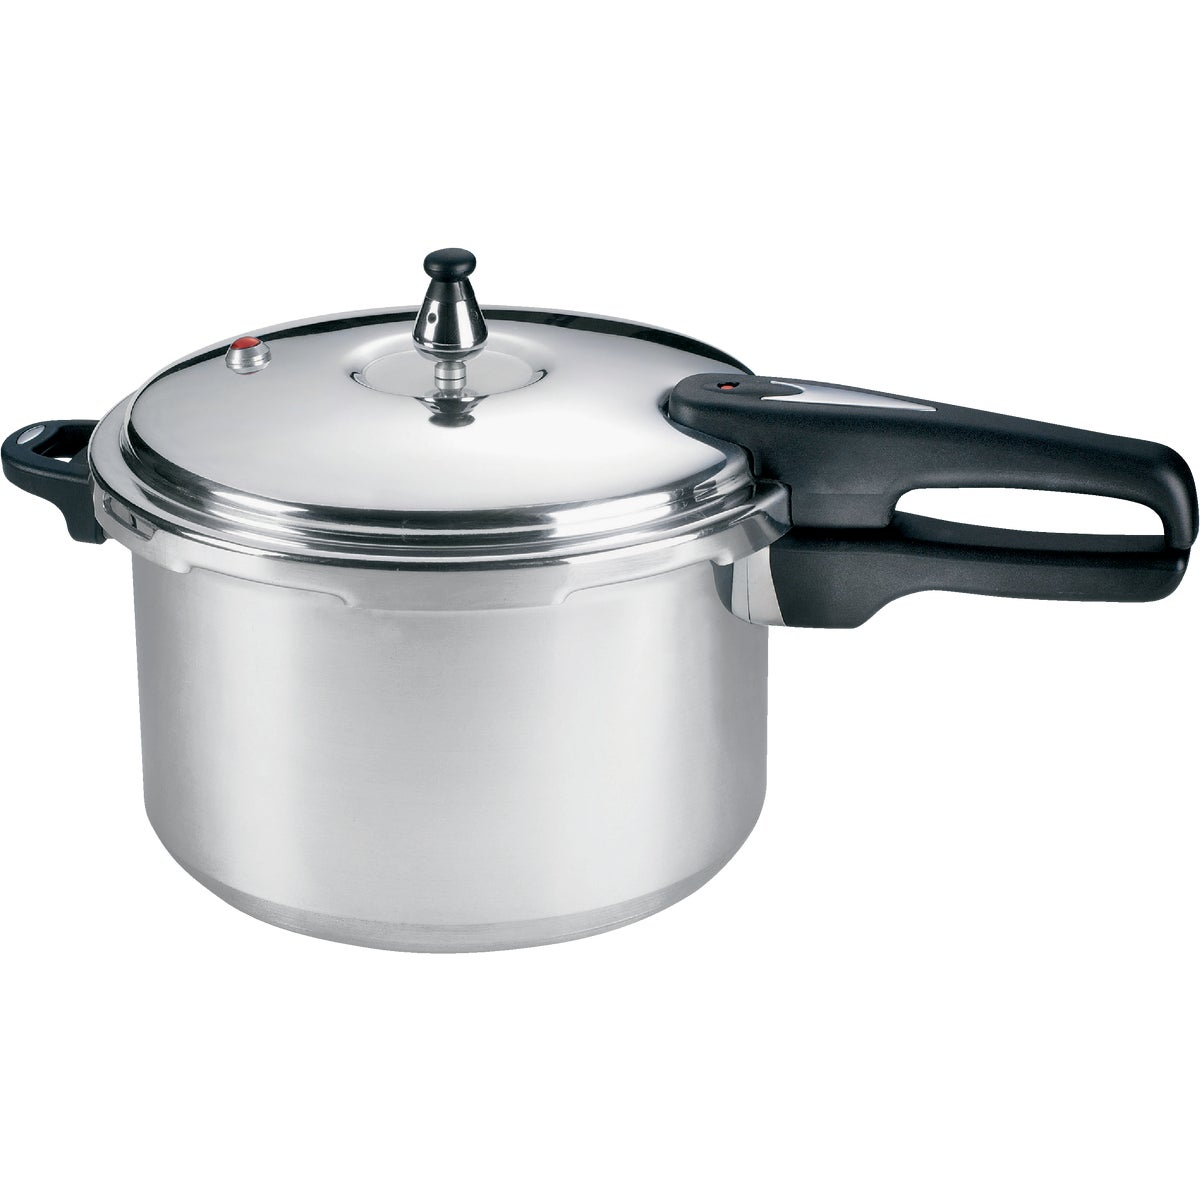 8QT PRESSURE COOKER - 92180A by T Fal Wearever